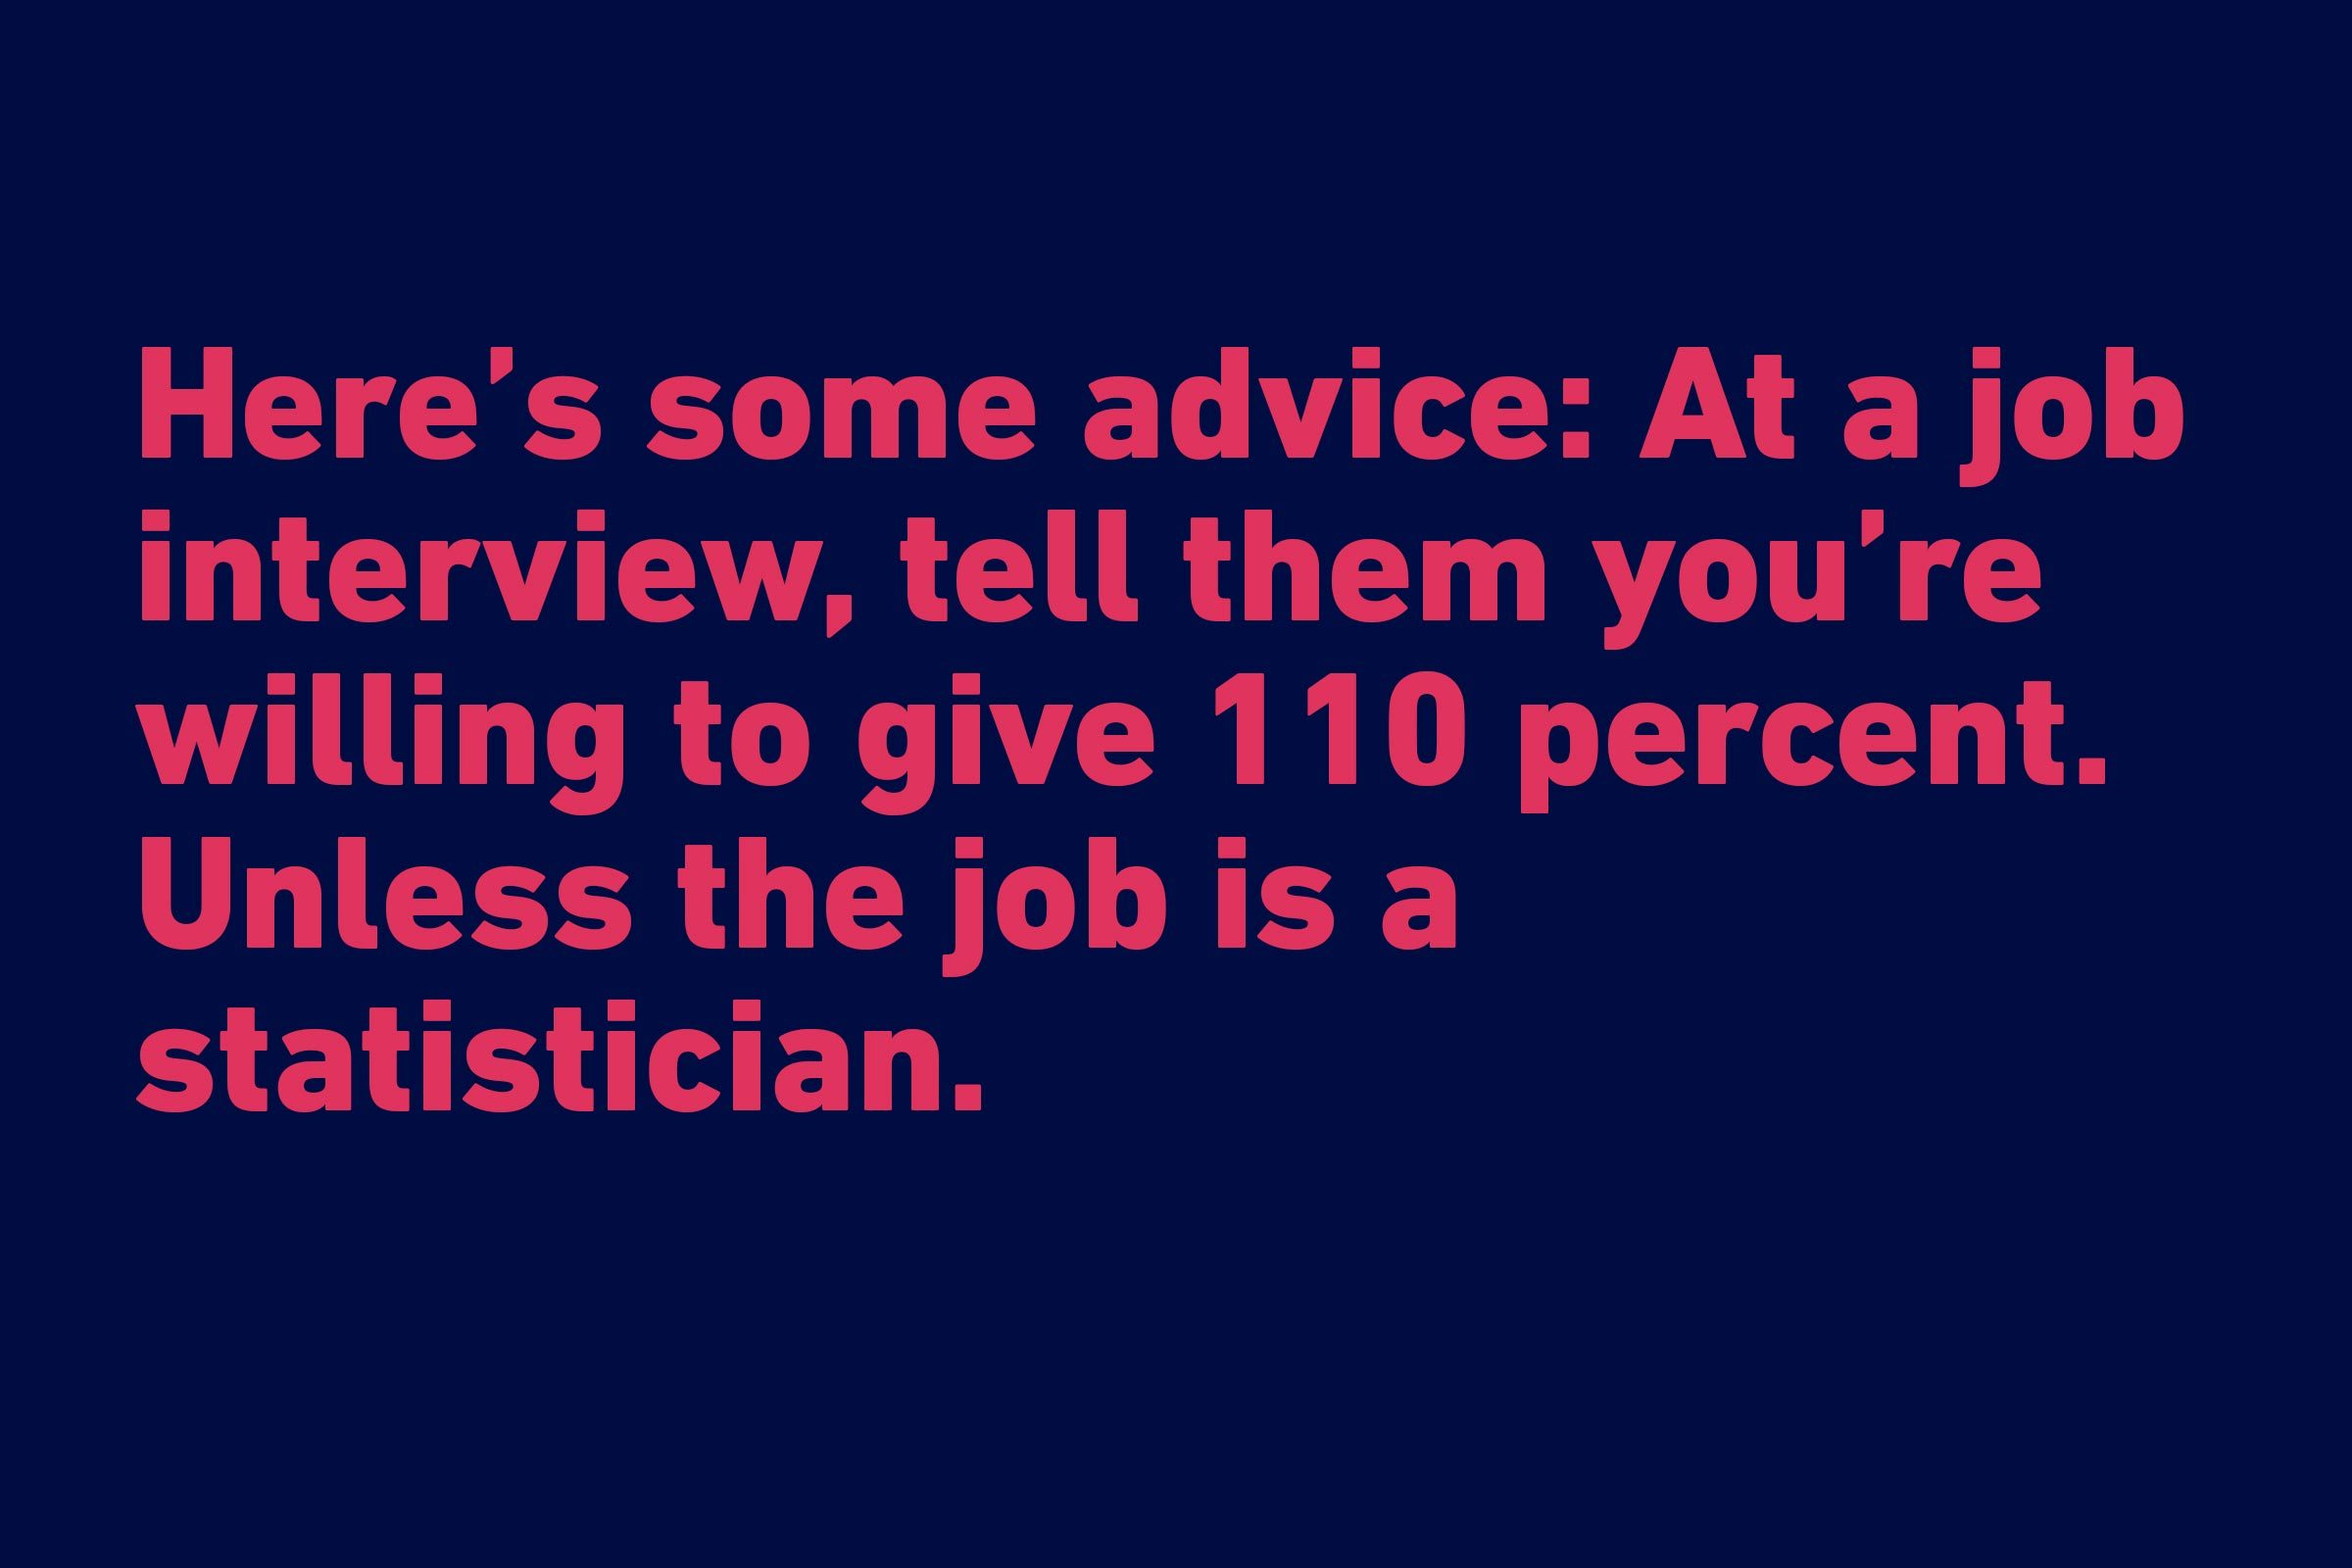 """Here's some advice: At a job interview, tell them you're willing to give 110 percent. Unless the job is a statistician."" —Adam Gropman"